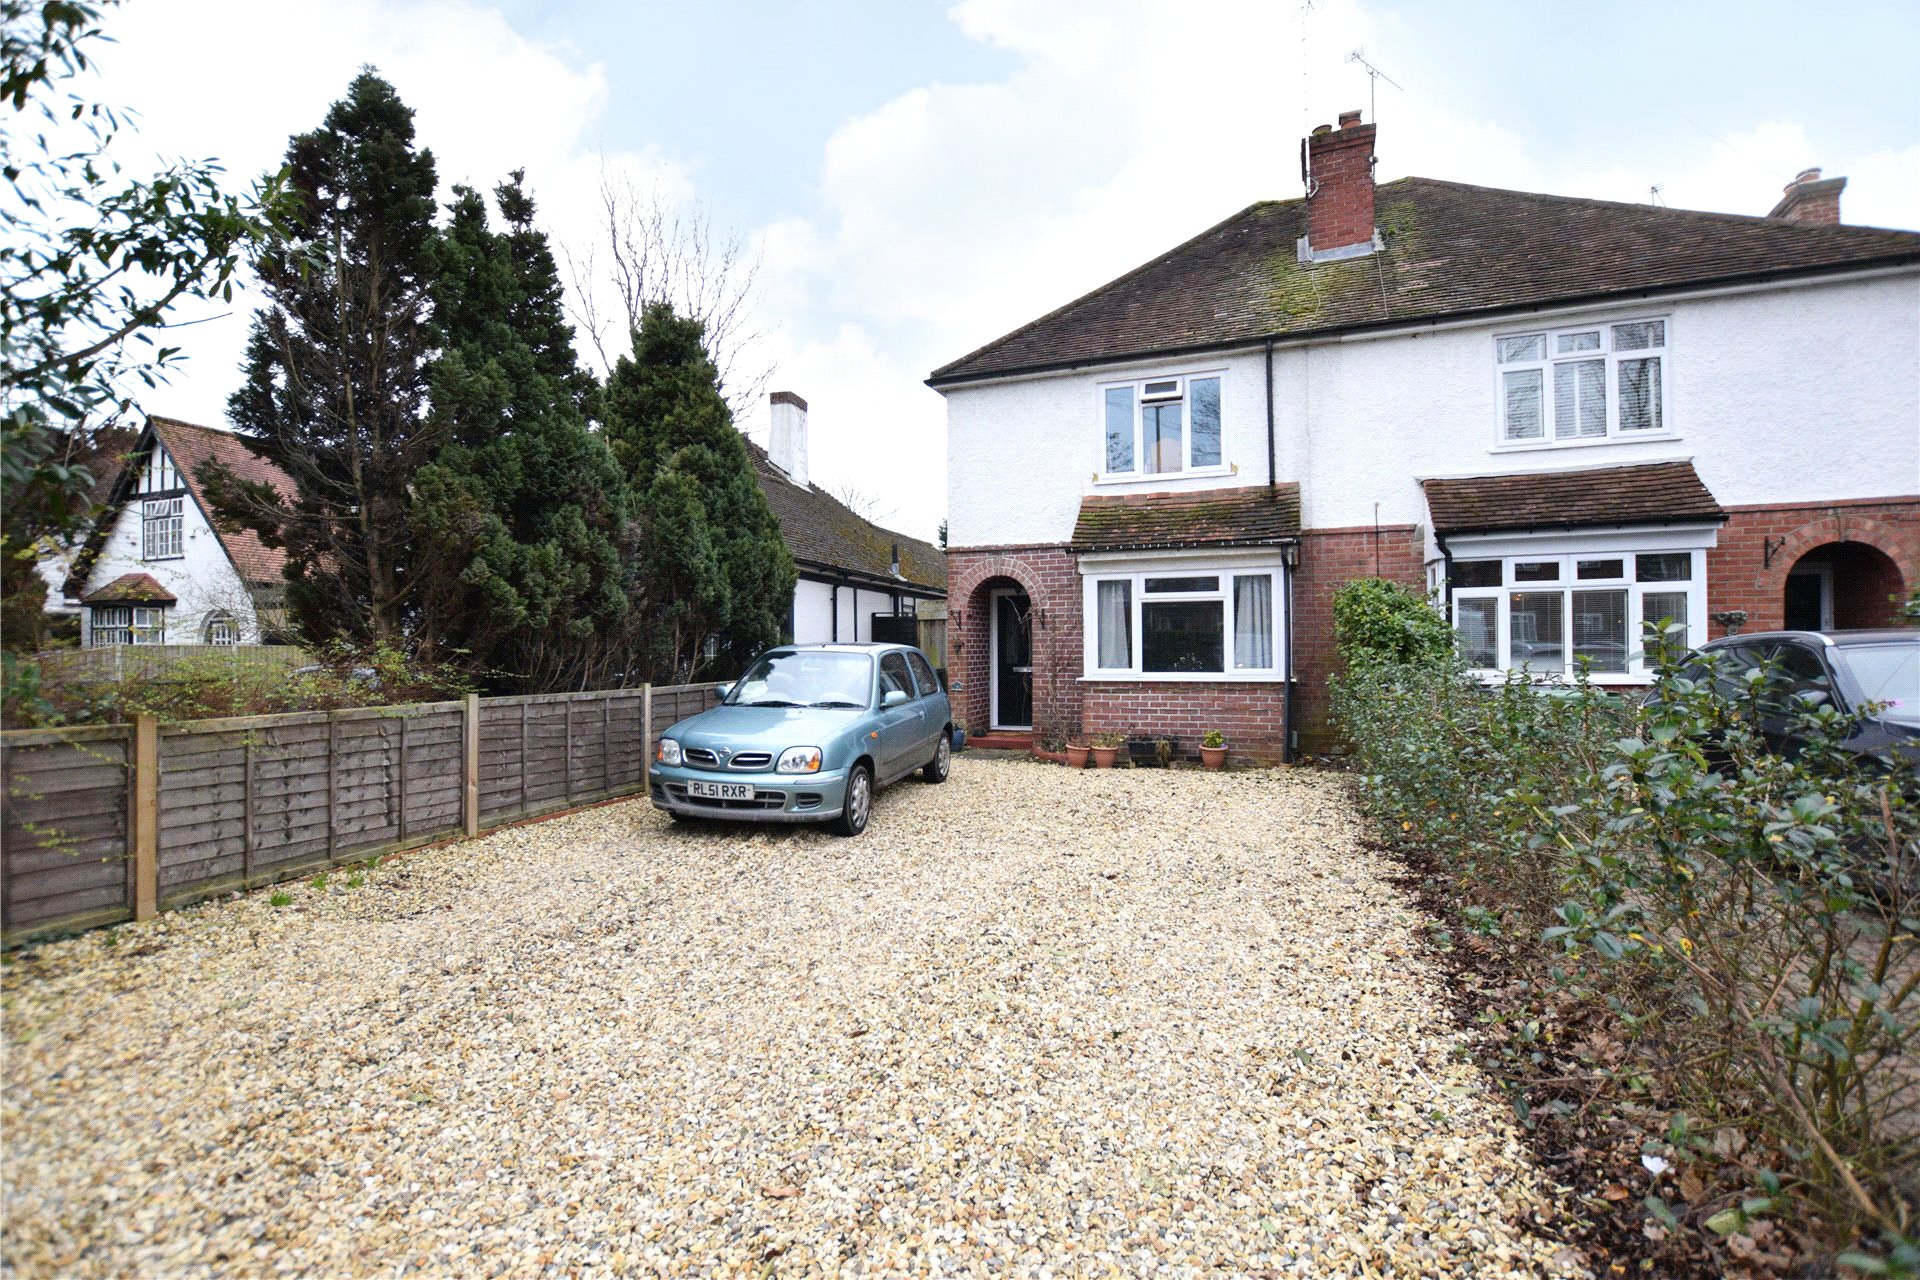 3 Bedrooms House for sale in Frimley Road, Camberley, Surrey, GU15